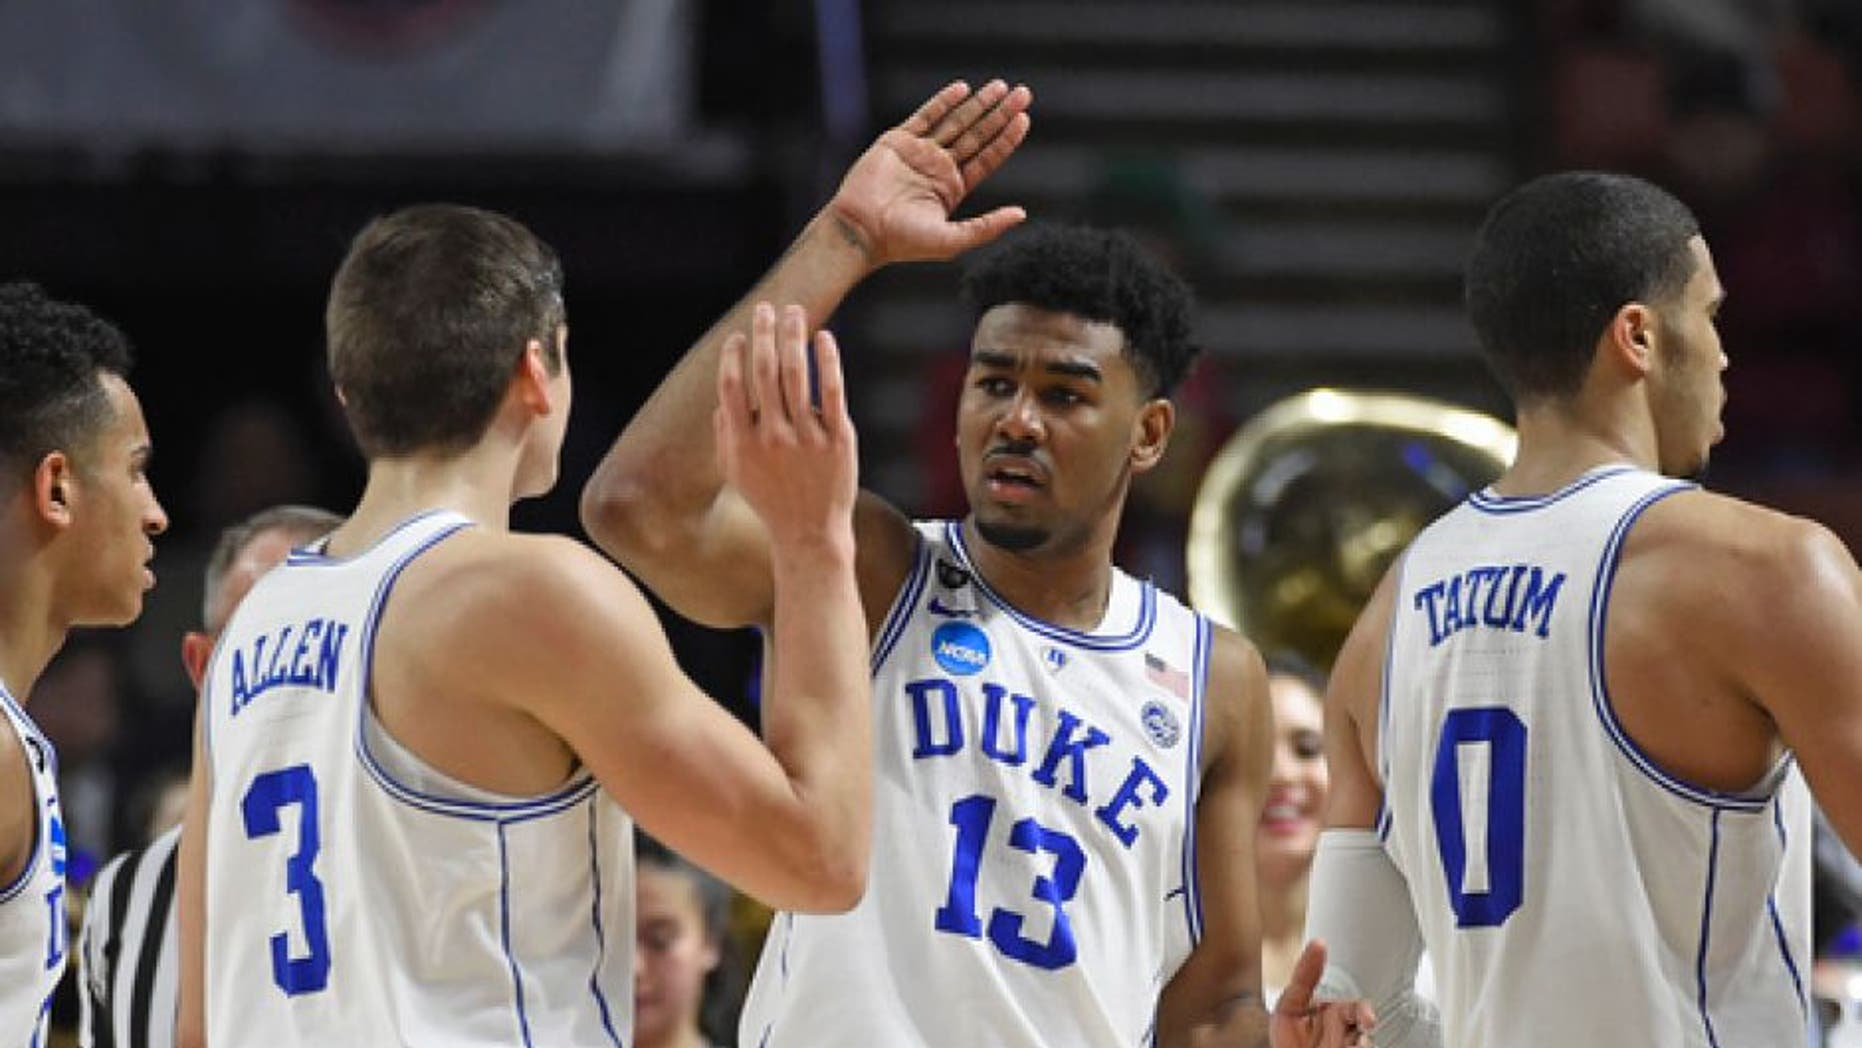 Duke's Matt Jones (13) celebrates with Grayson Allen (3) during the first half against Troy in a first-round game of the NCAA men's college basketball tournament in Greenville, S.C., Friday, March 17, 2017. (AP Photo/Rainier Ehrhardt)